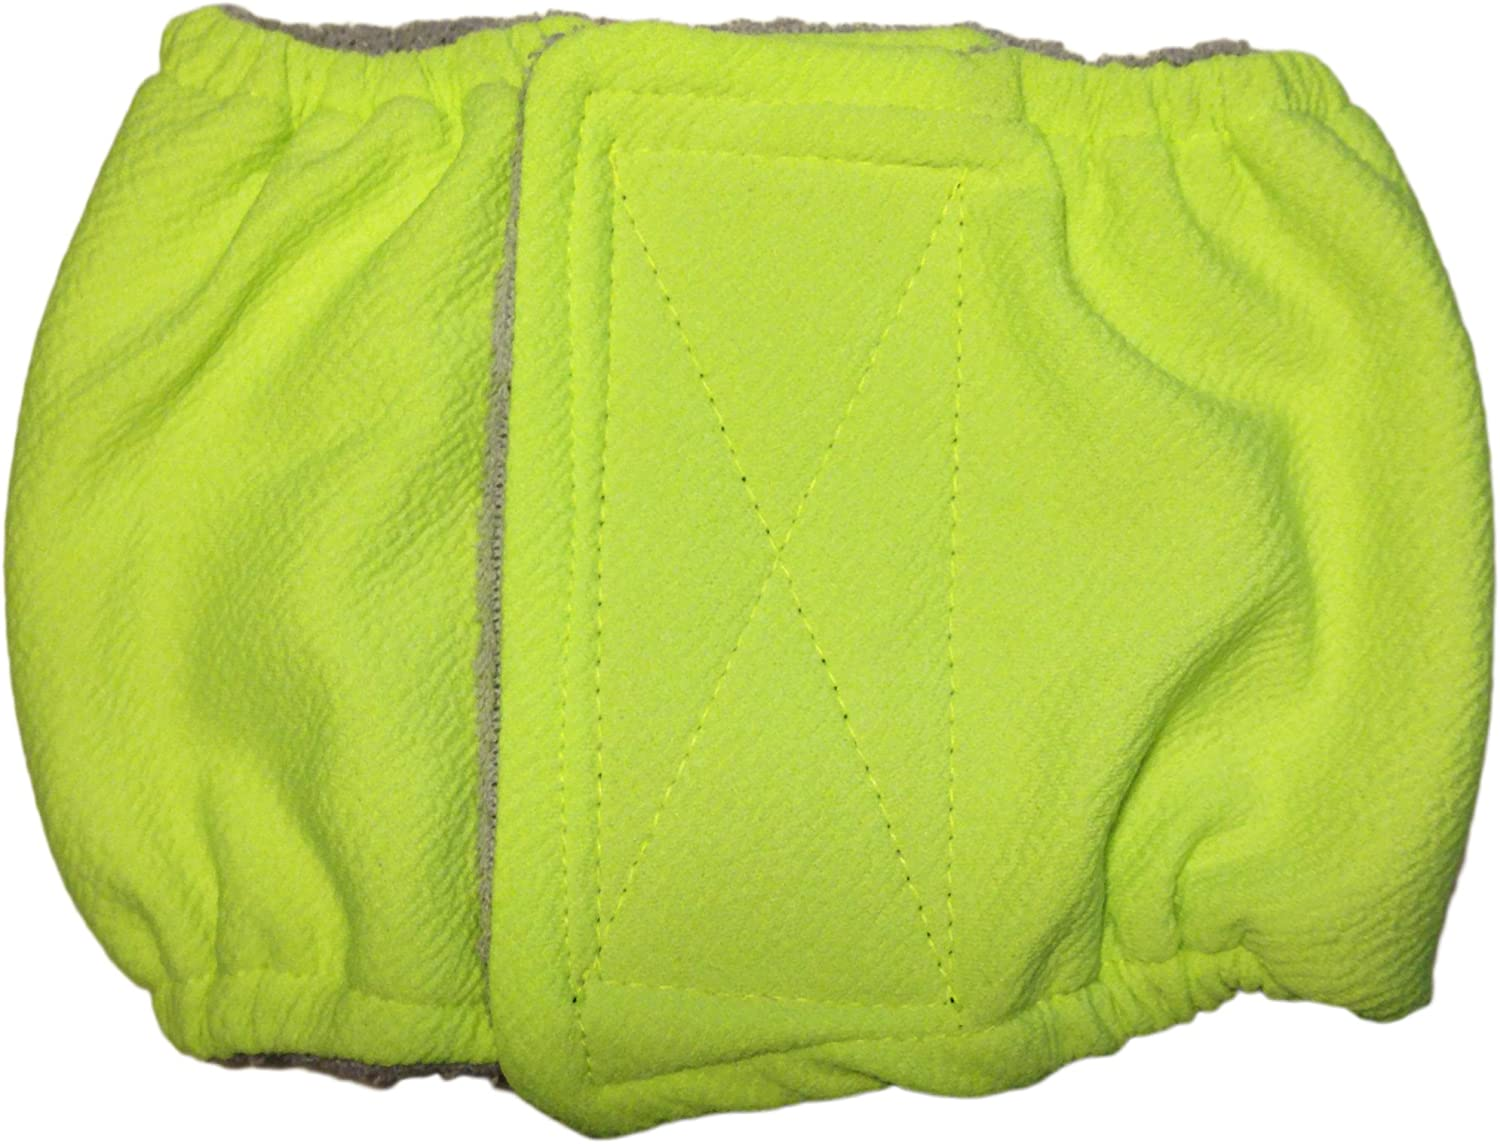 Pistachio  Lime Green Waterproof Absorbent Belly Band for Dogs